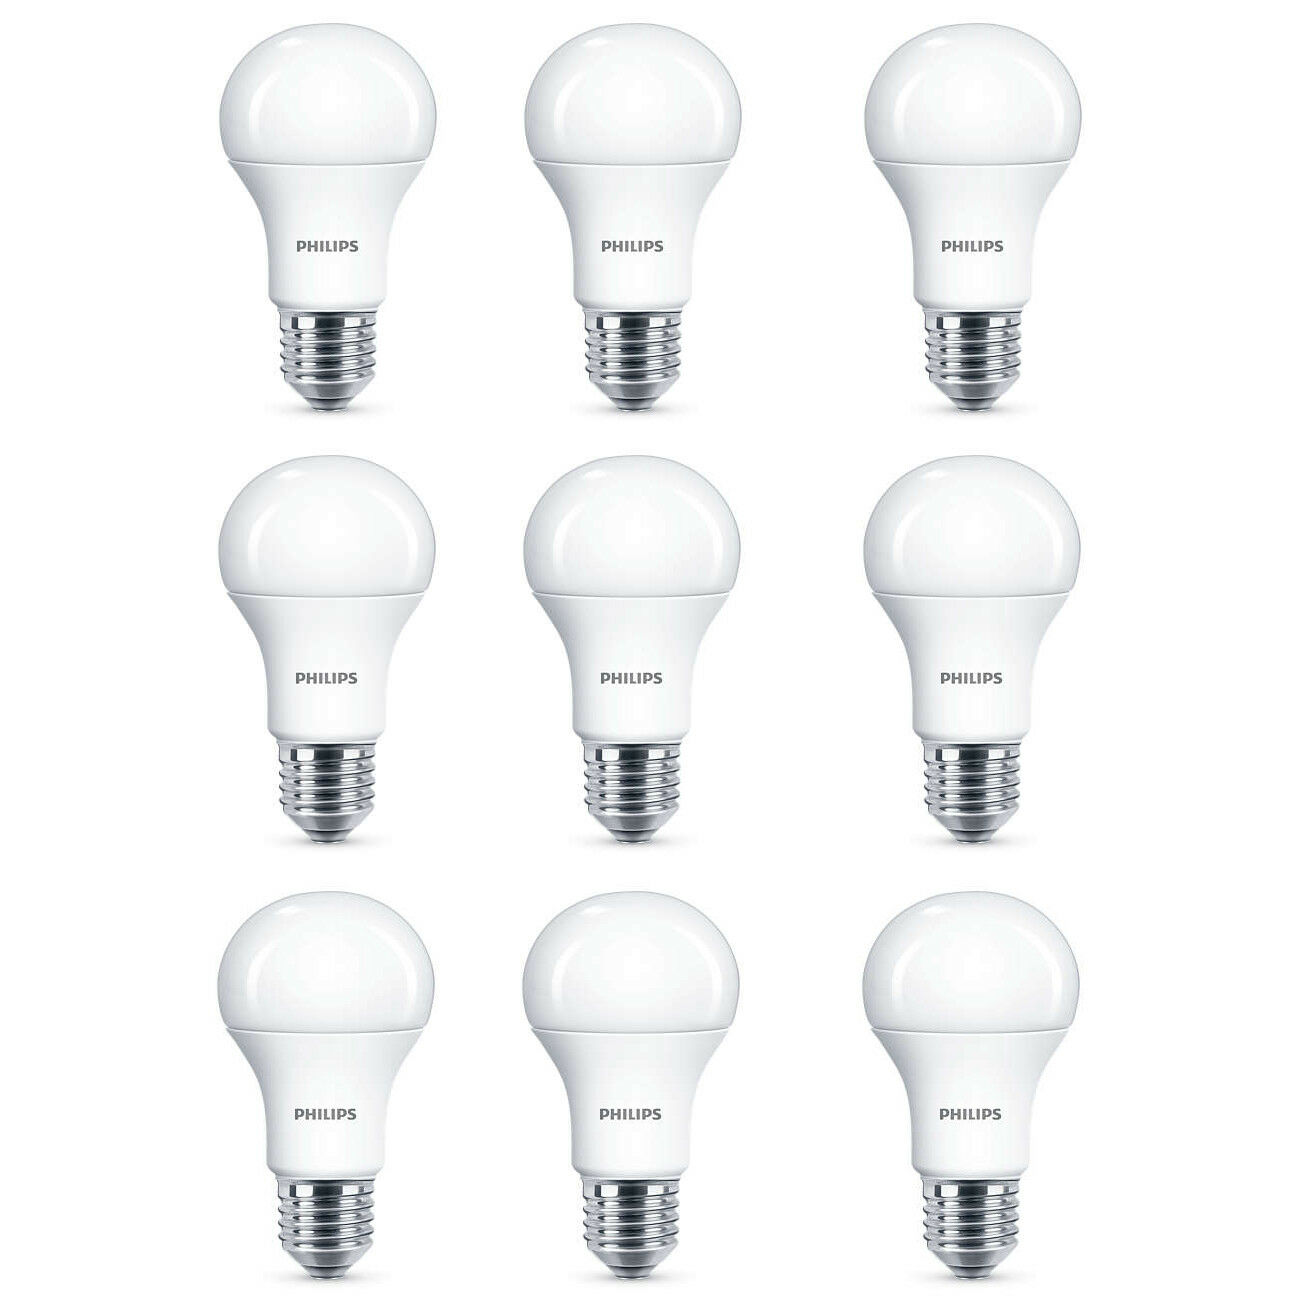 9x Philips LED Frosted e27 100w cálido blanco edison screw light bulbs lamp 1521lm